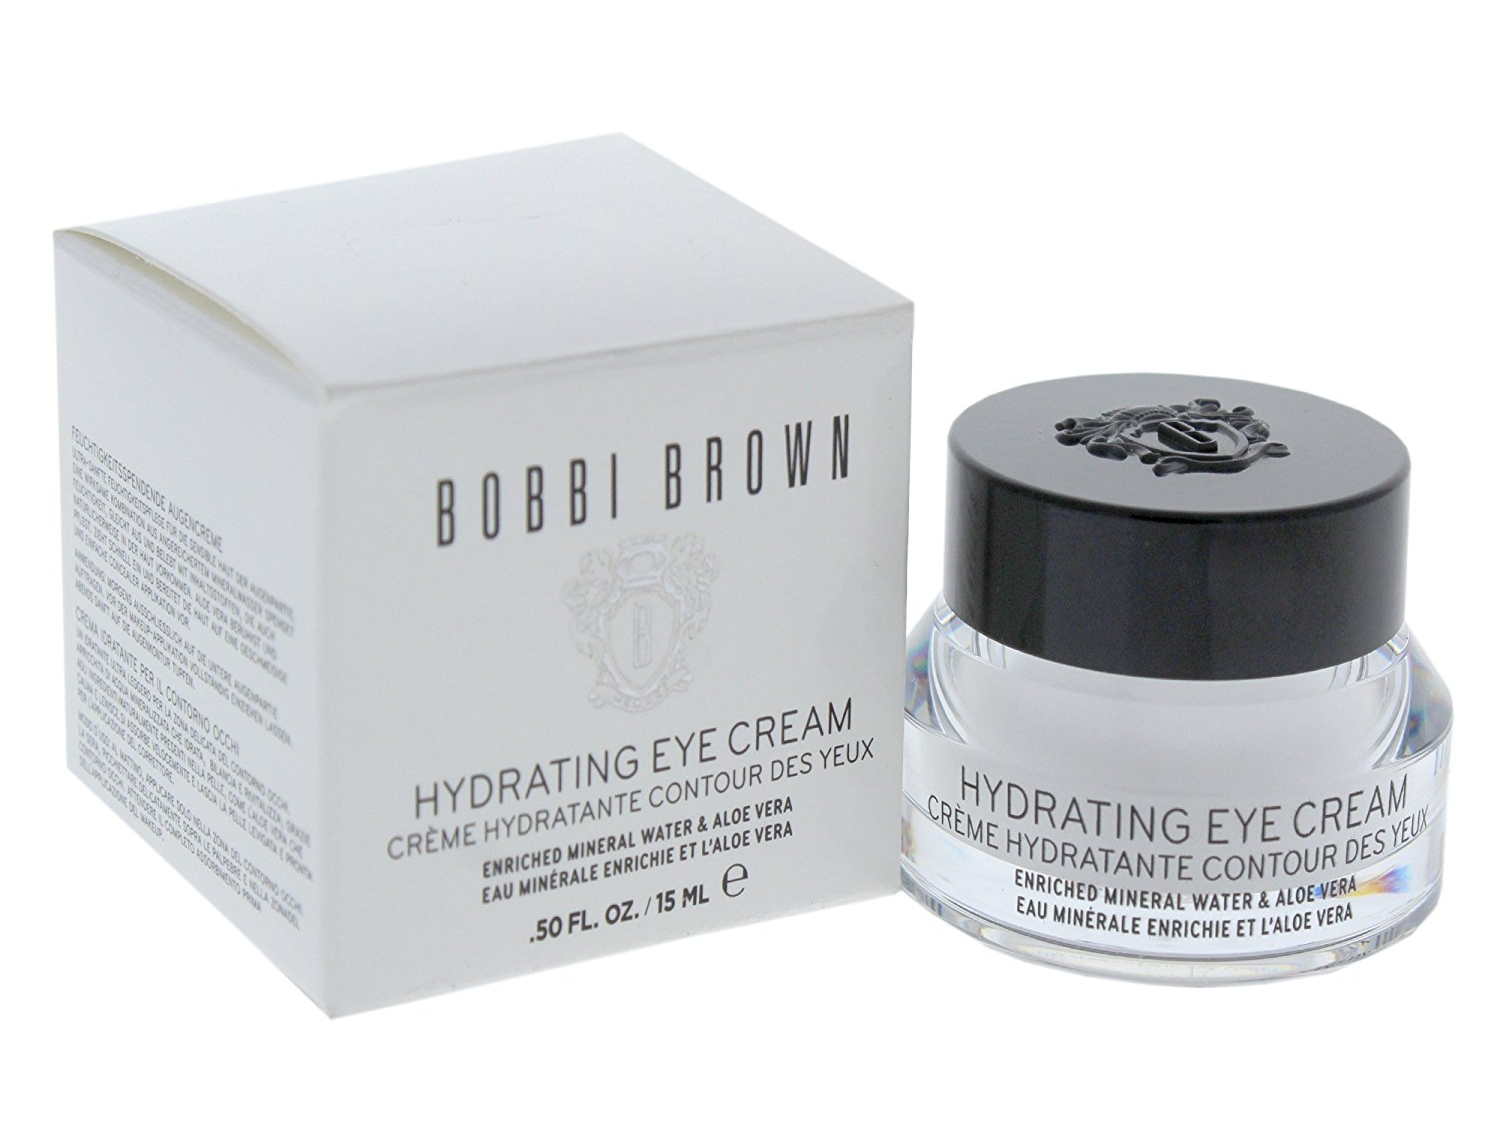 Bobbi Brown Hydrating Eye Cream. Image credit: Amazon.